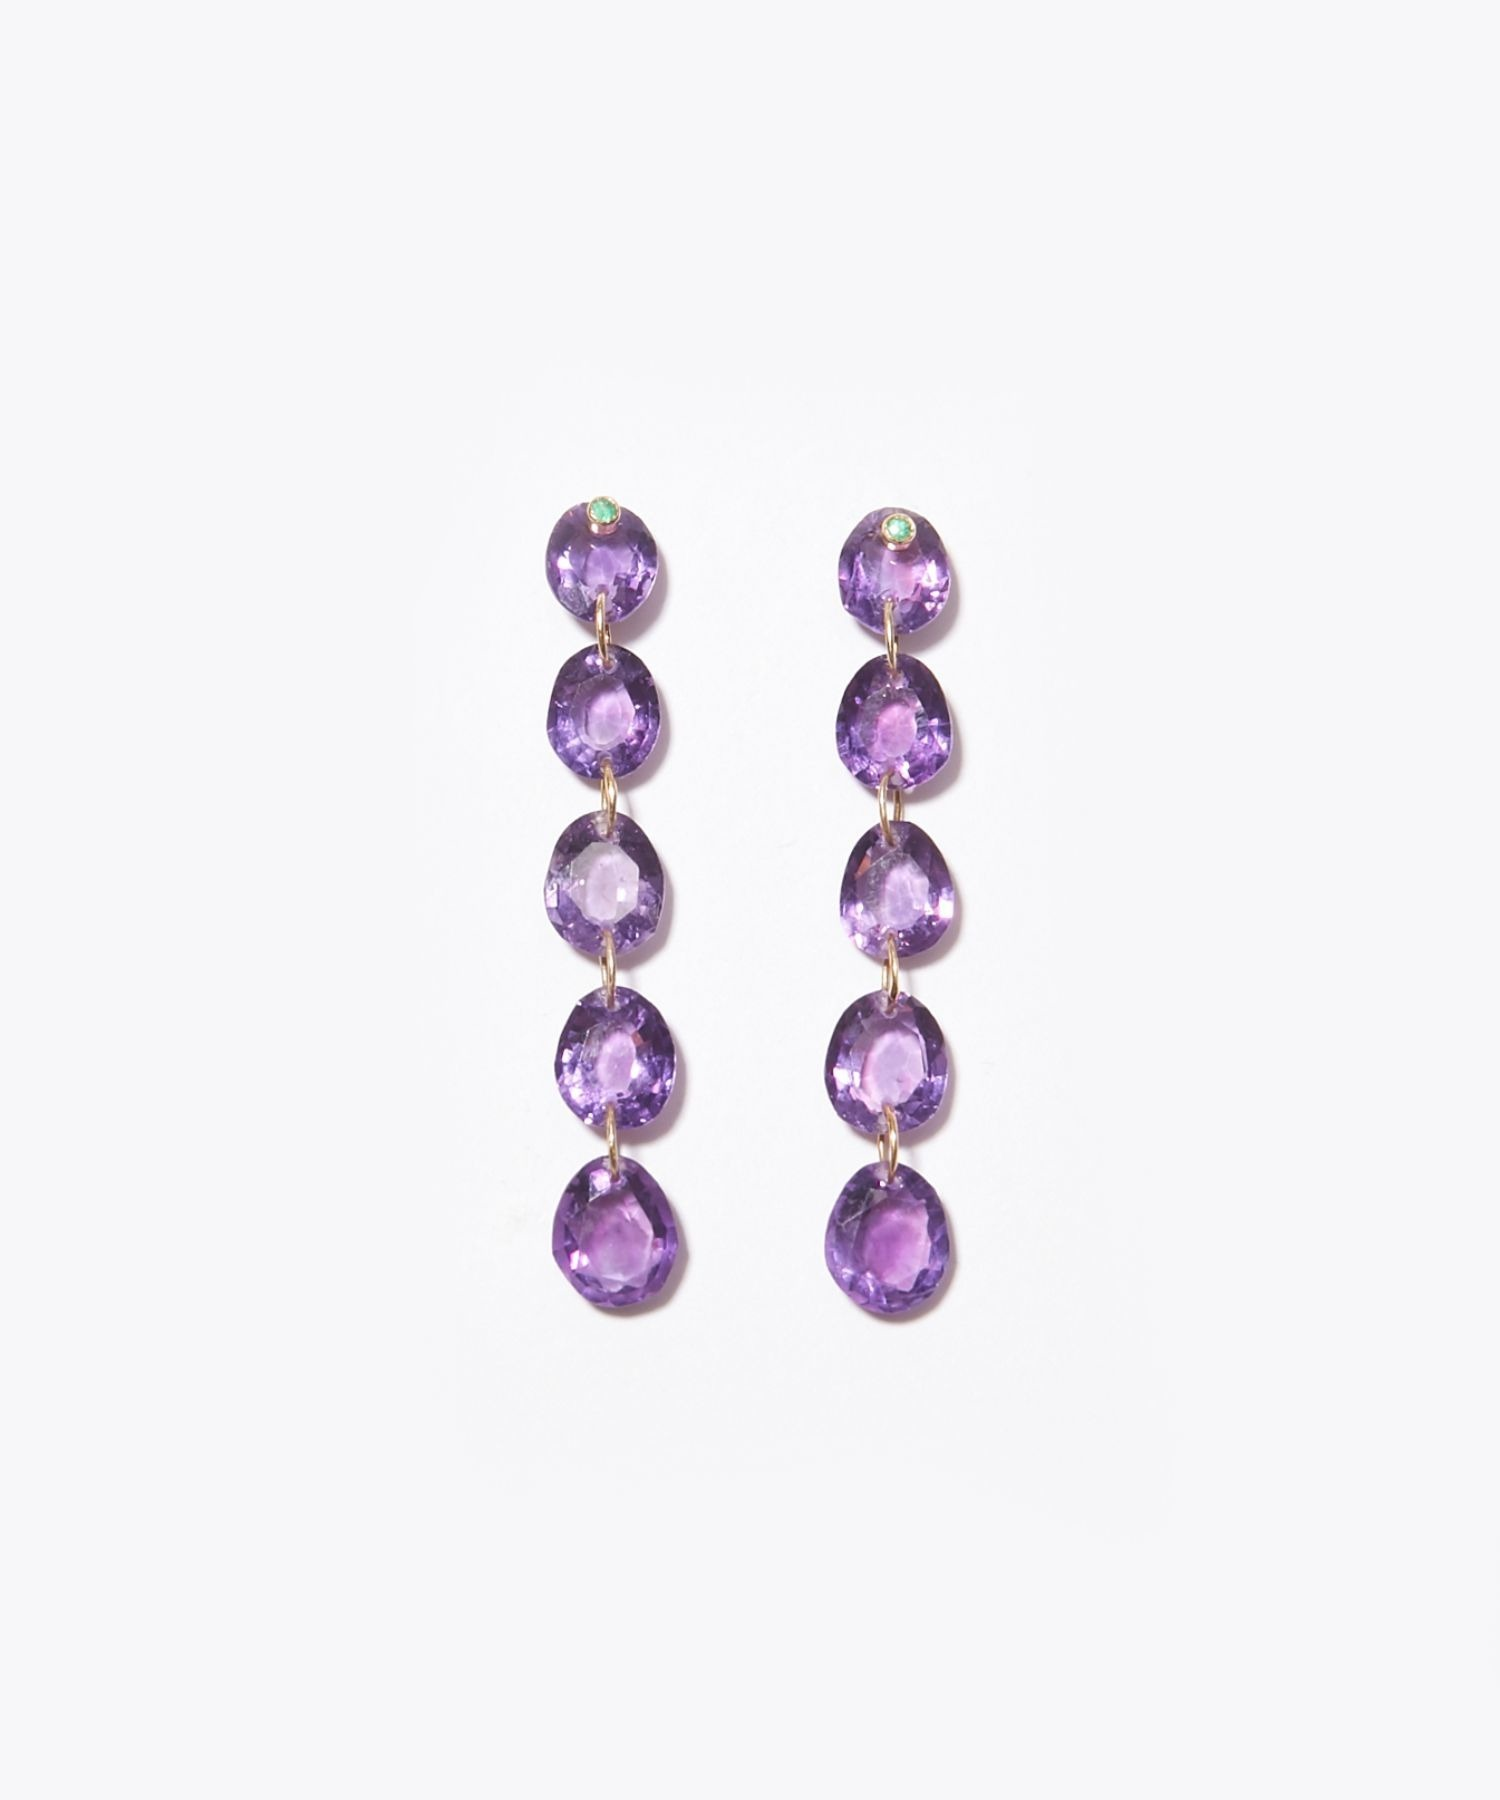 [eden] K10 dark amethyst tear drops pierced earring